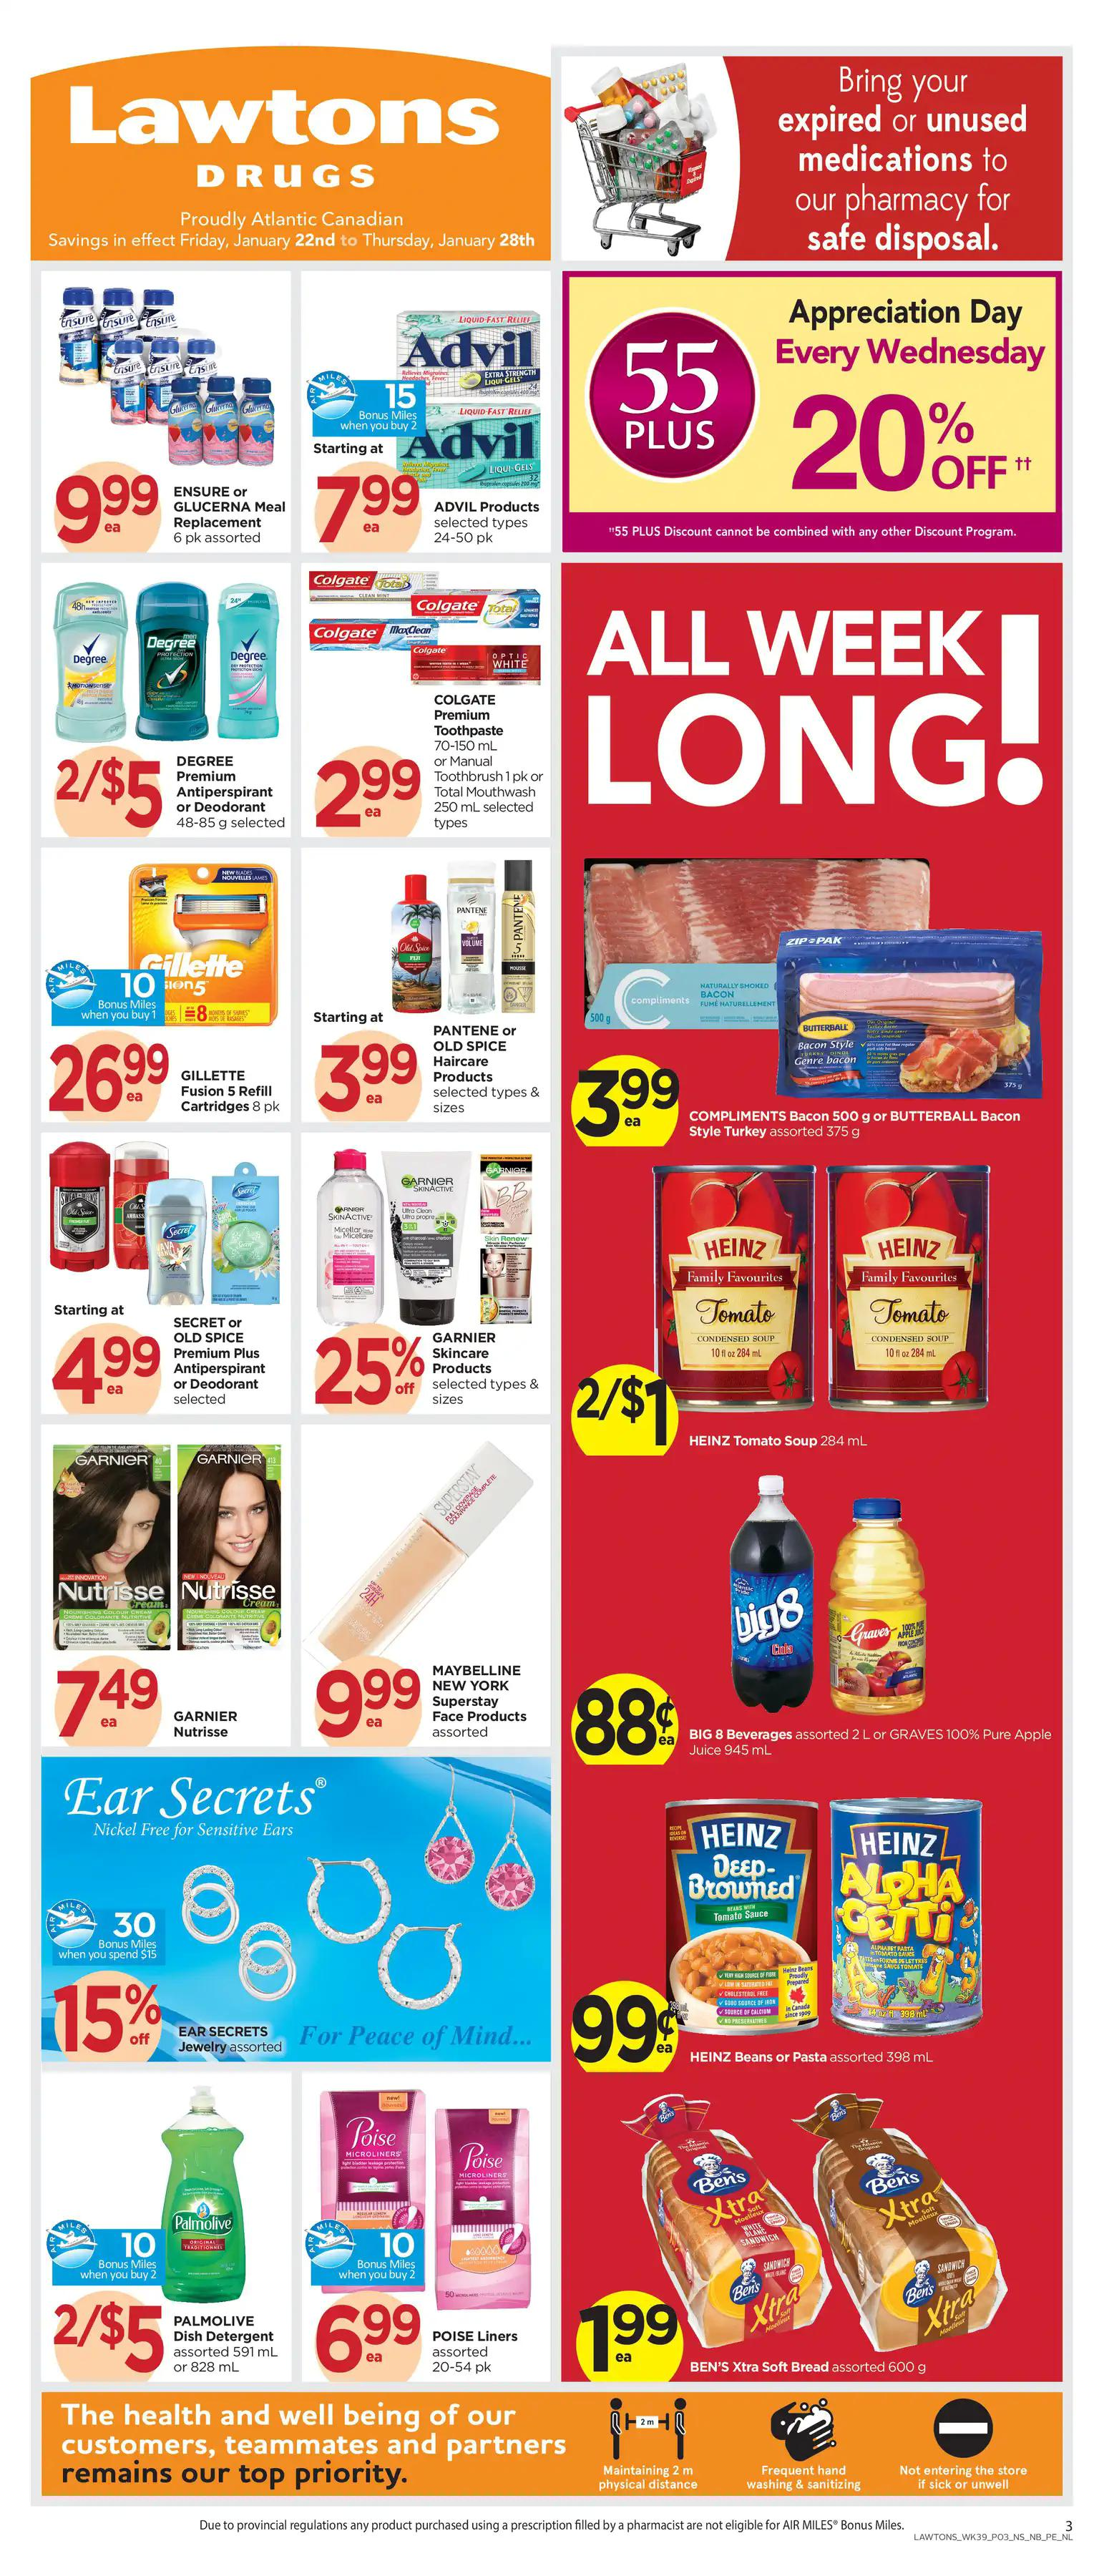 Lawtons Drugs - Weekly Flyer Specials